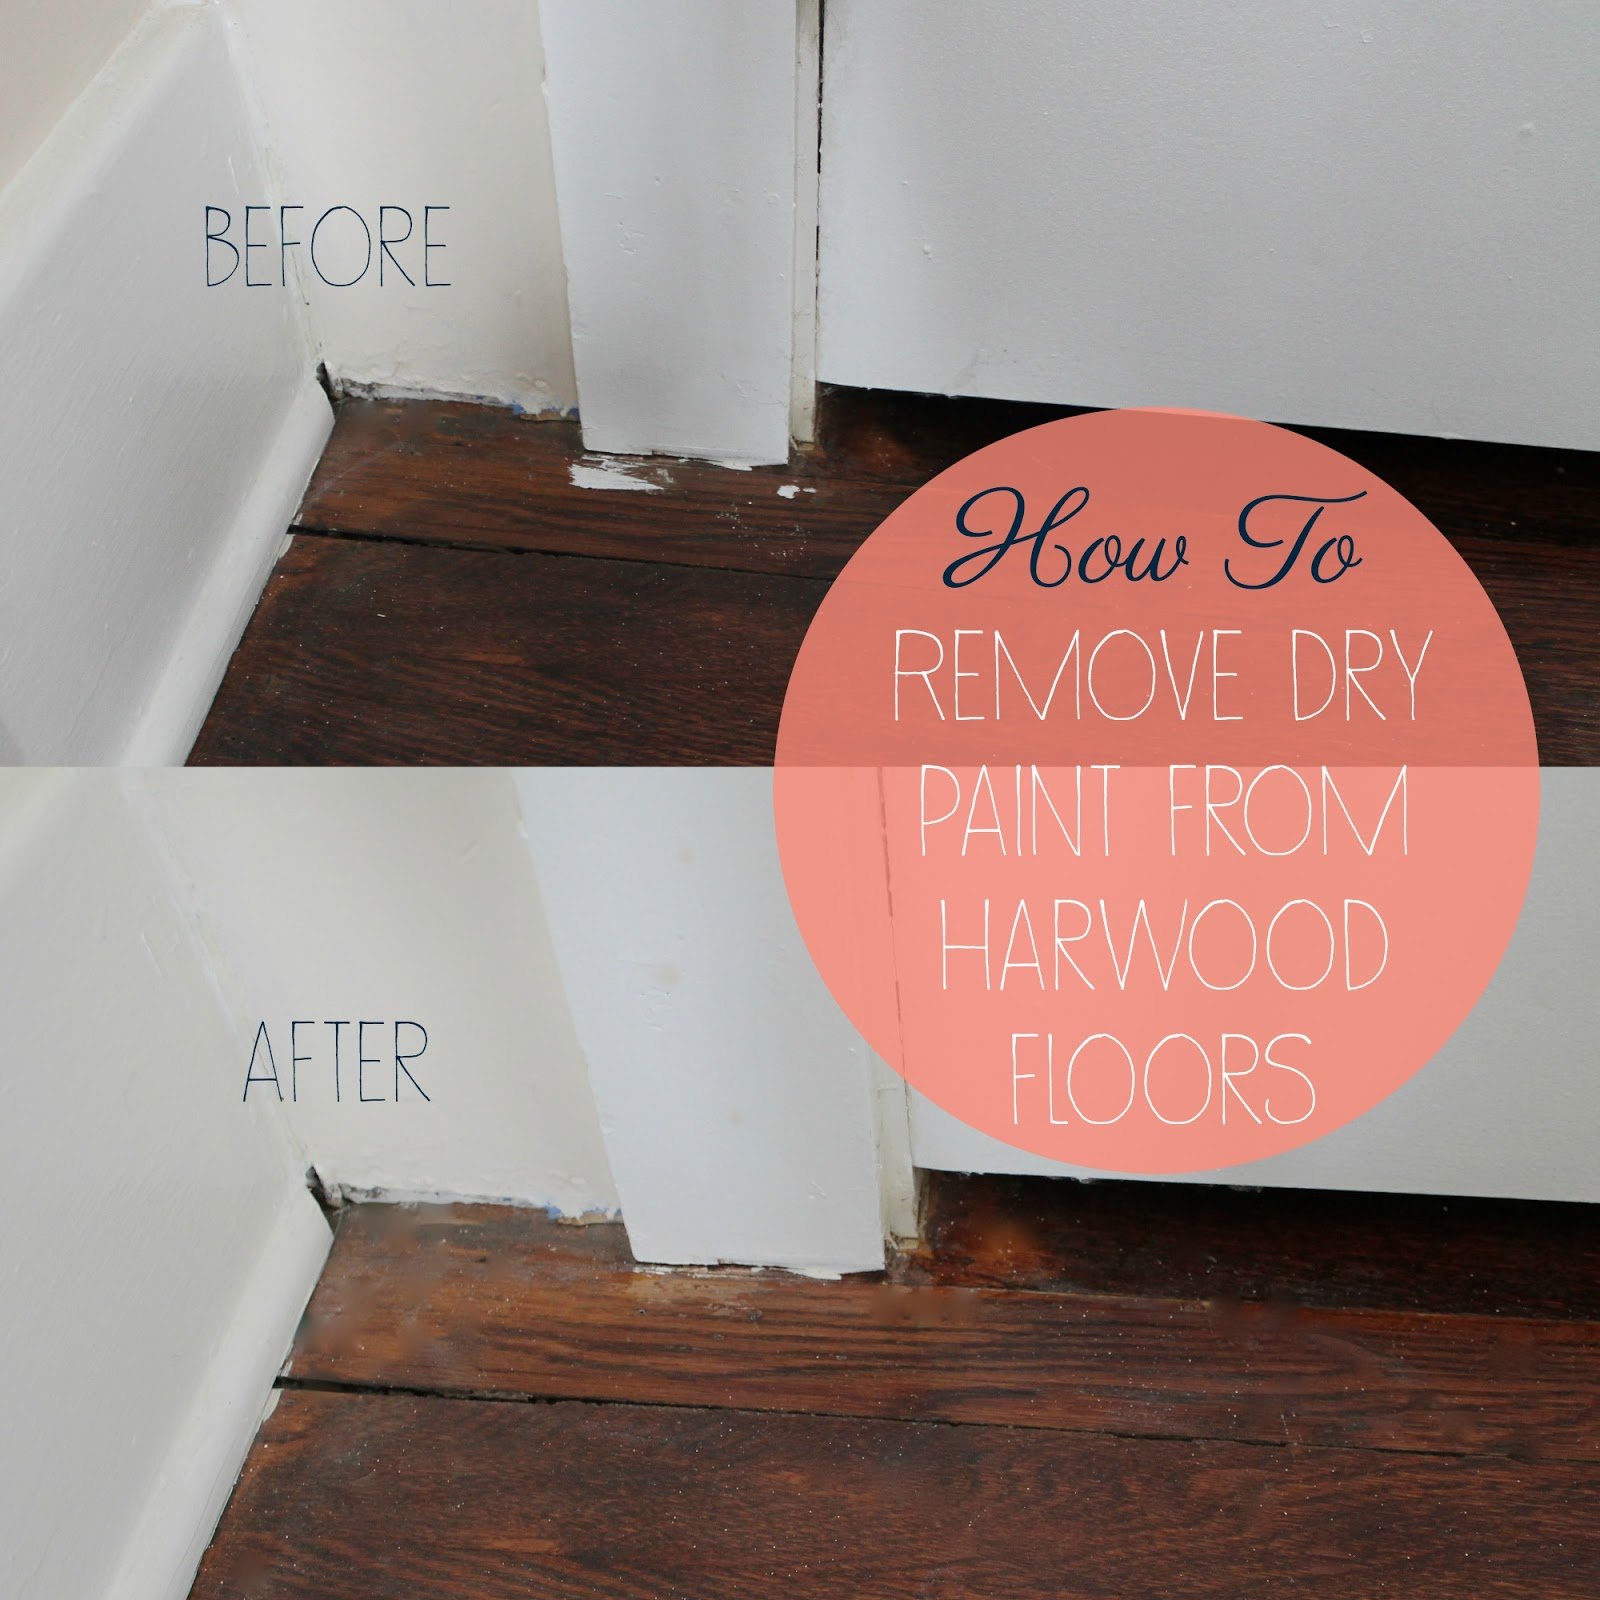 Perfect How To: Remove Dry Paint From Hardwood Floors